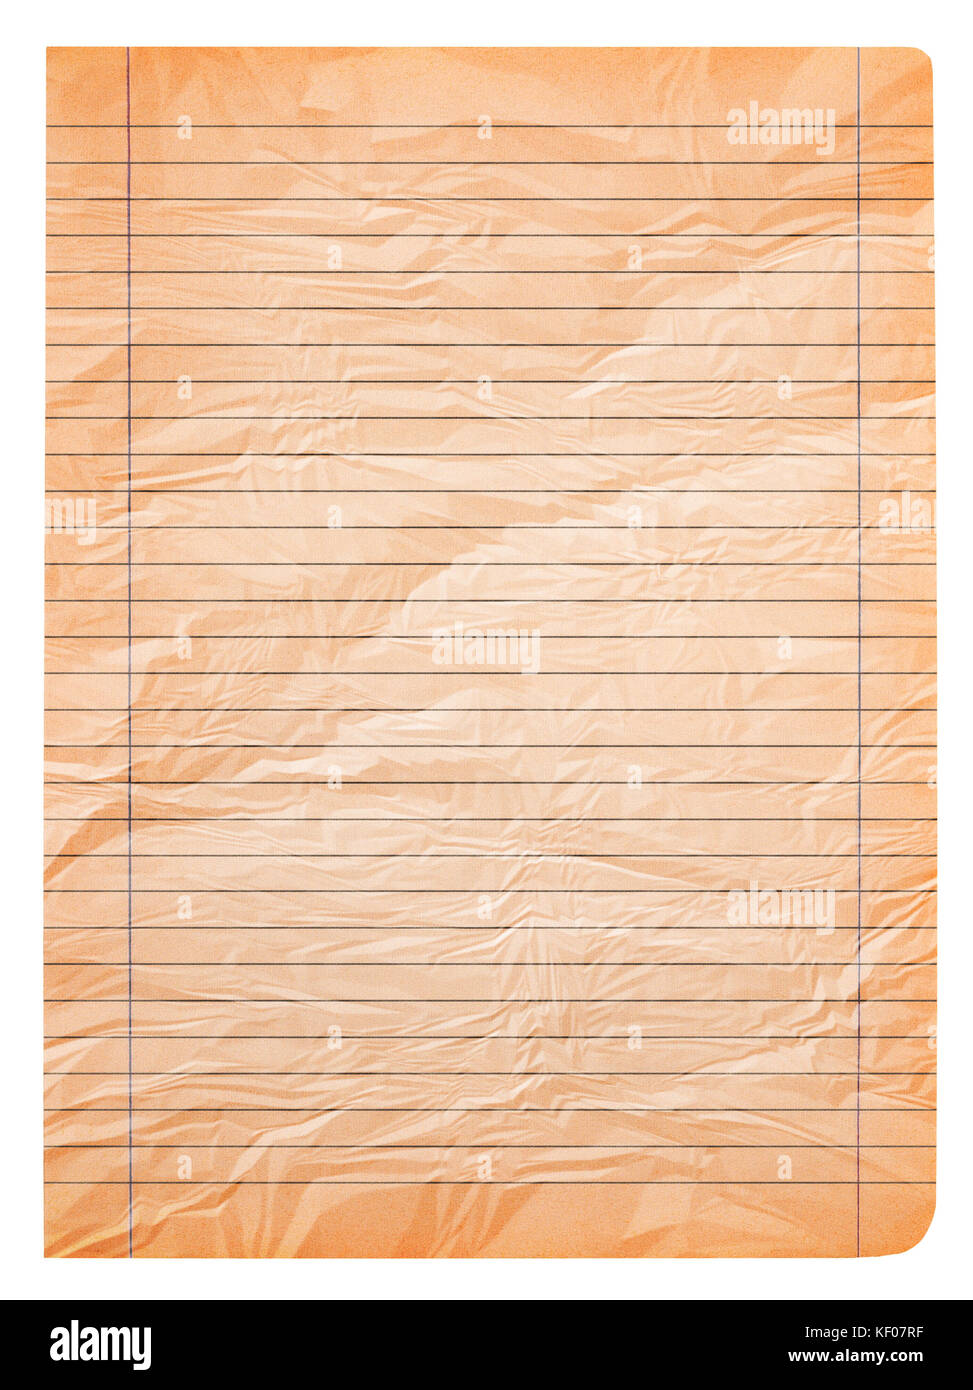 old wrinkled page of notebook paper stock image